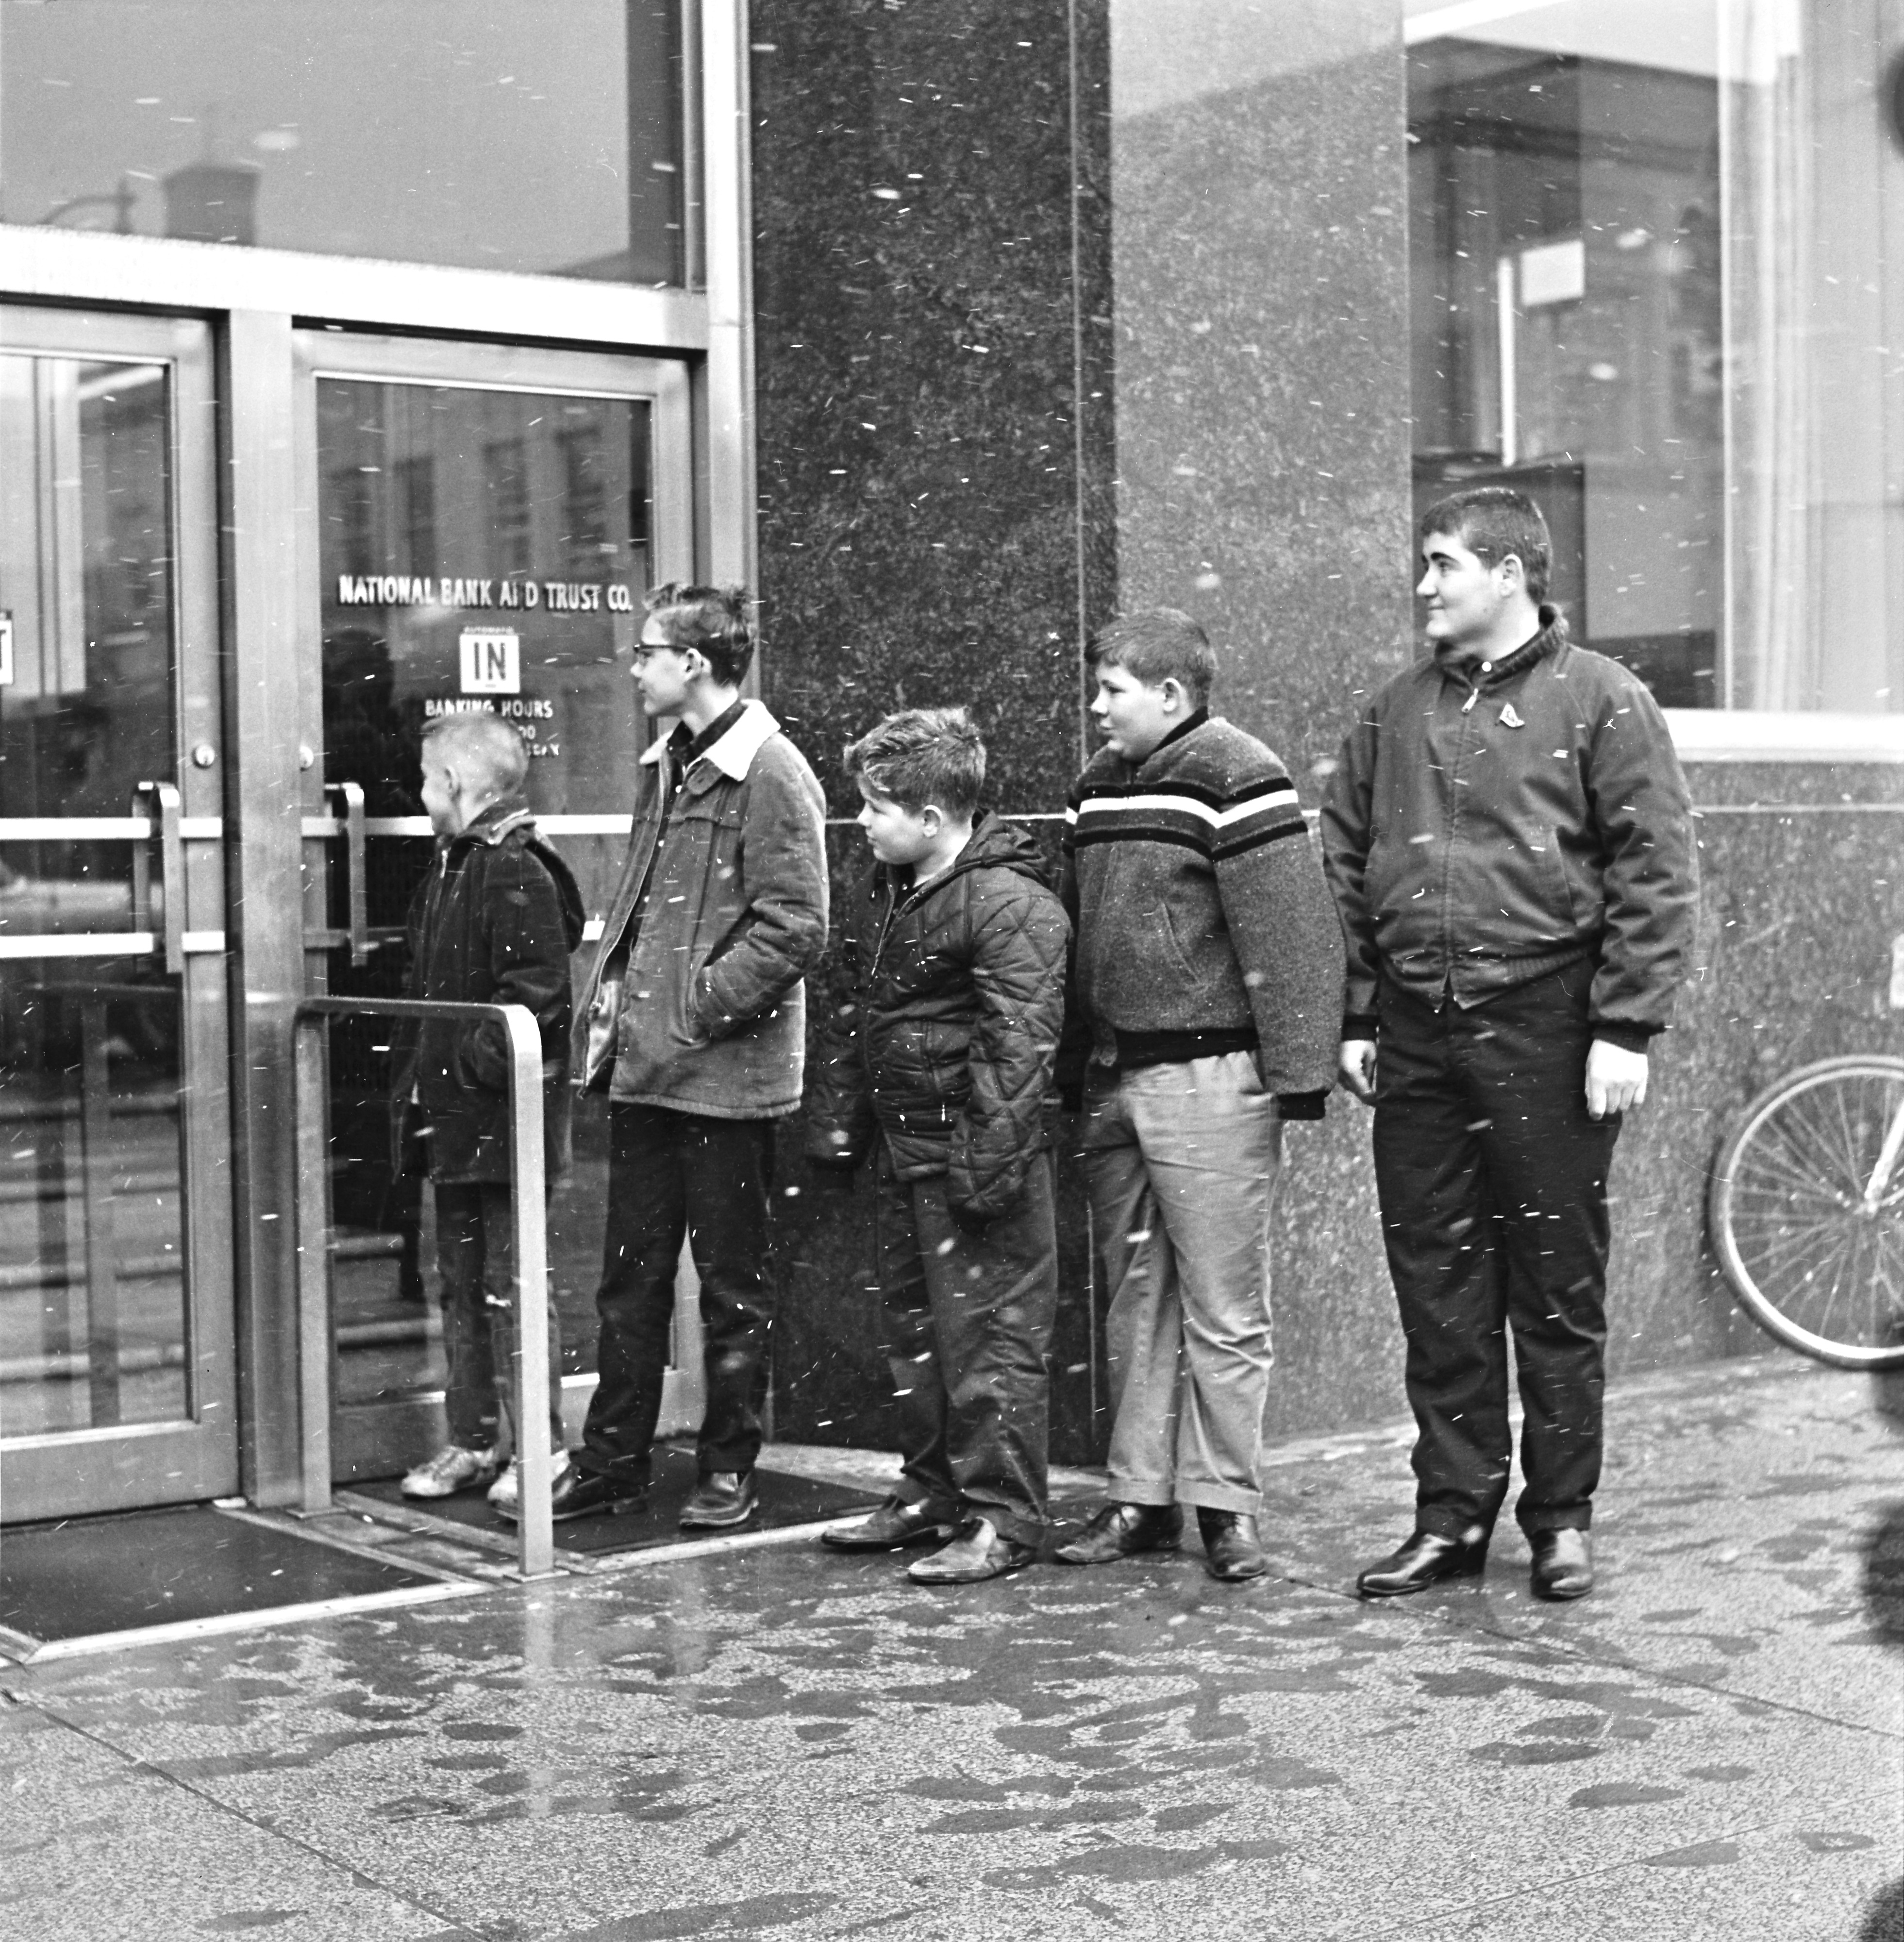 Waiting in Line Outside the National Bank and Trust Co. to Buy the New Kennedy Half Dollar, March 1964 image